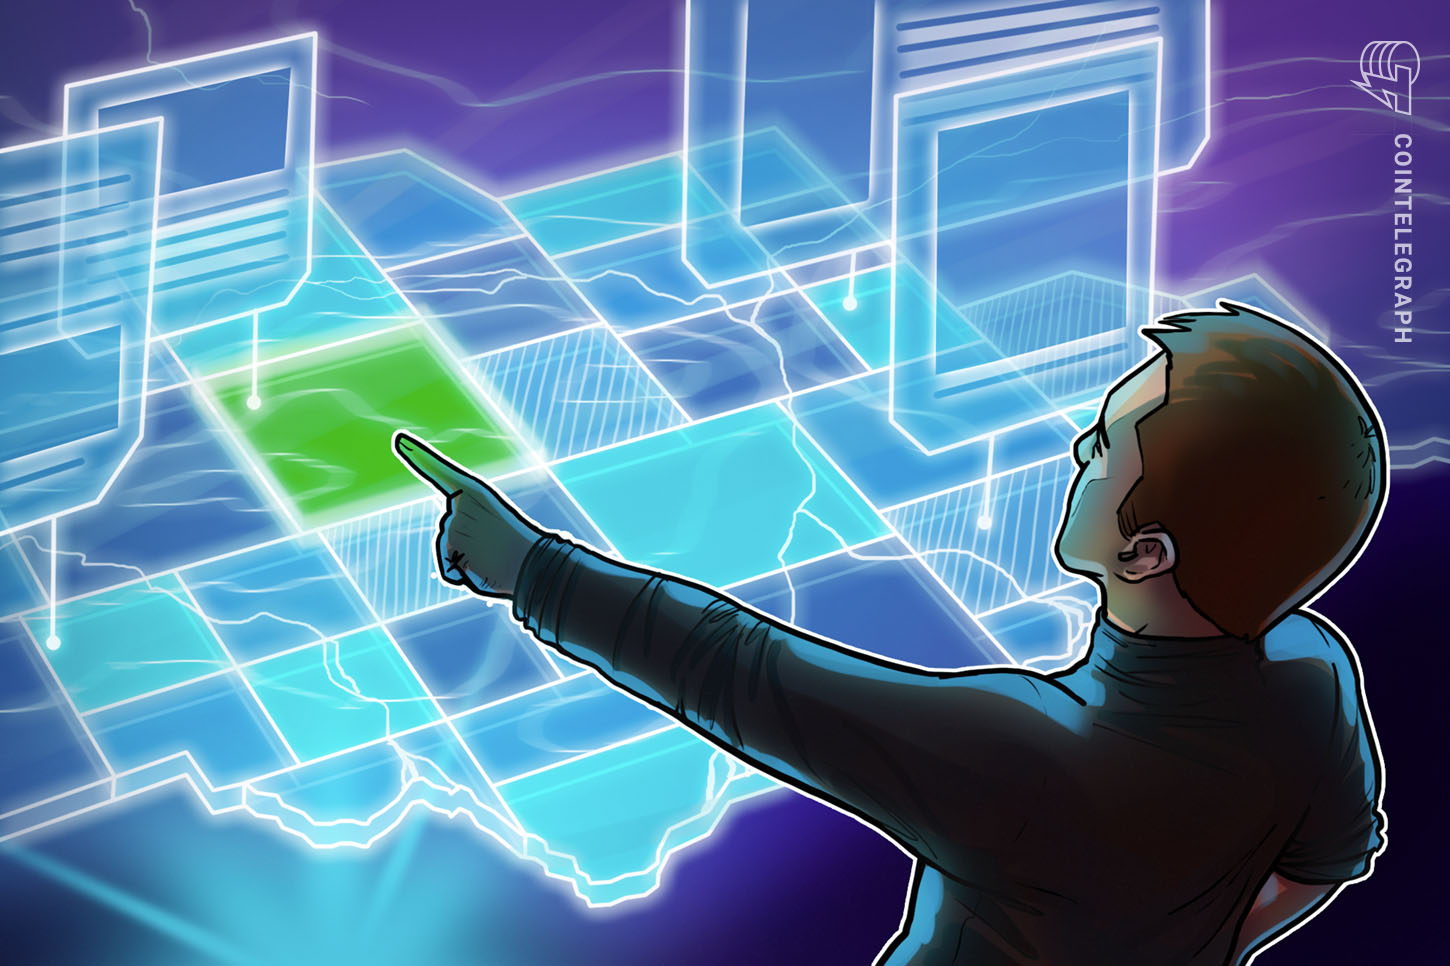 Whale vault gobbles up virtual real estate for development in The Sandbox